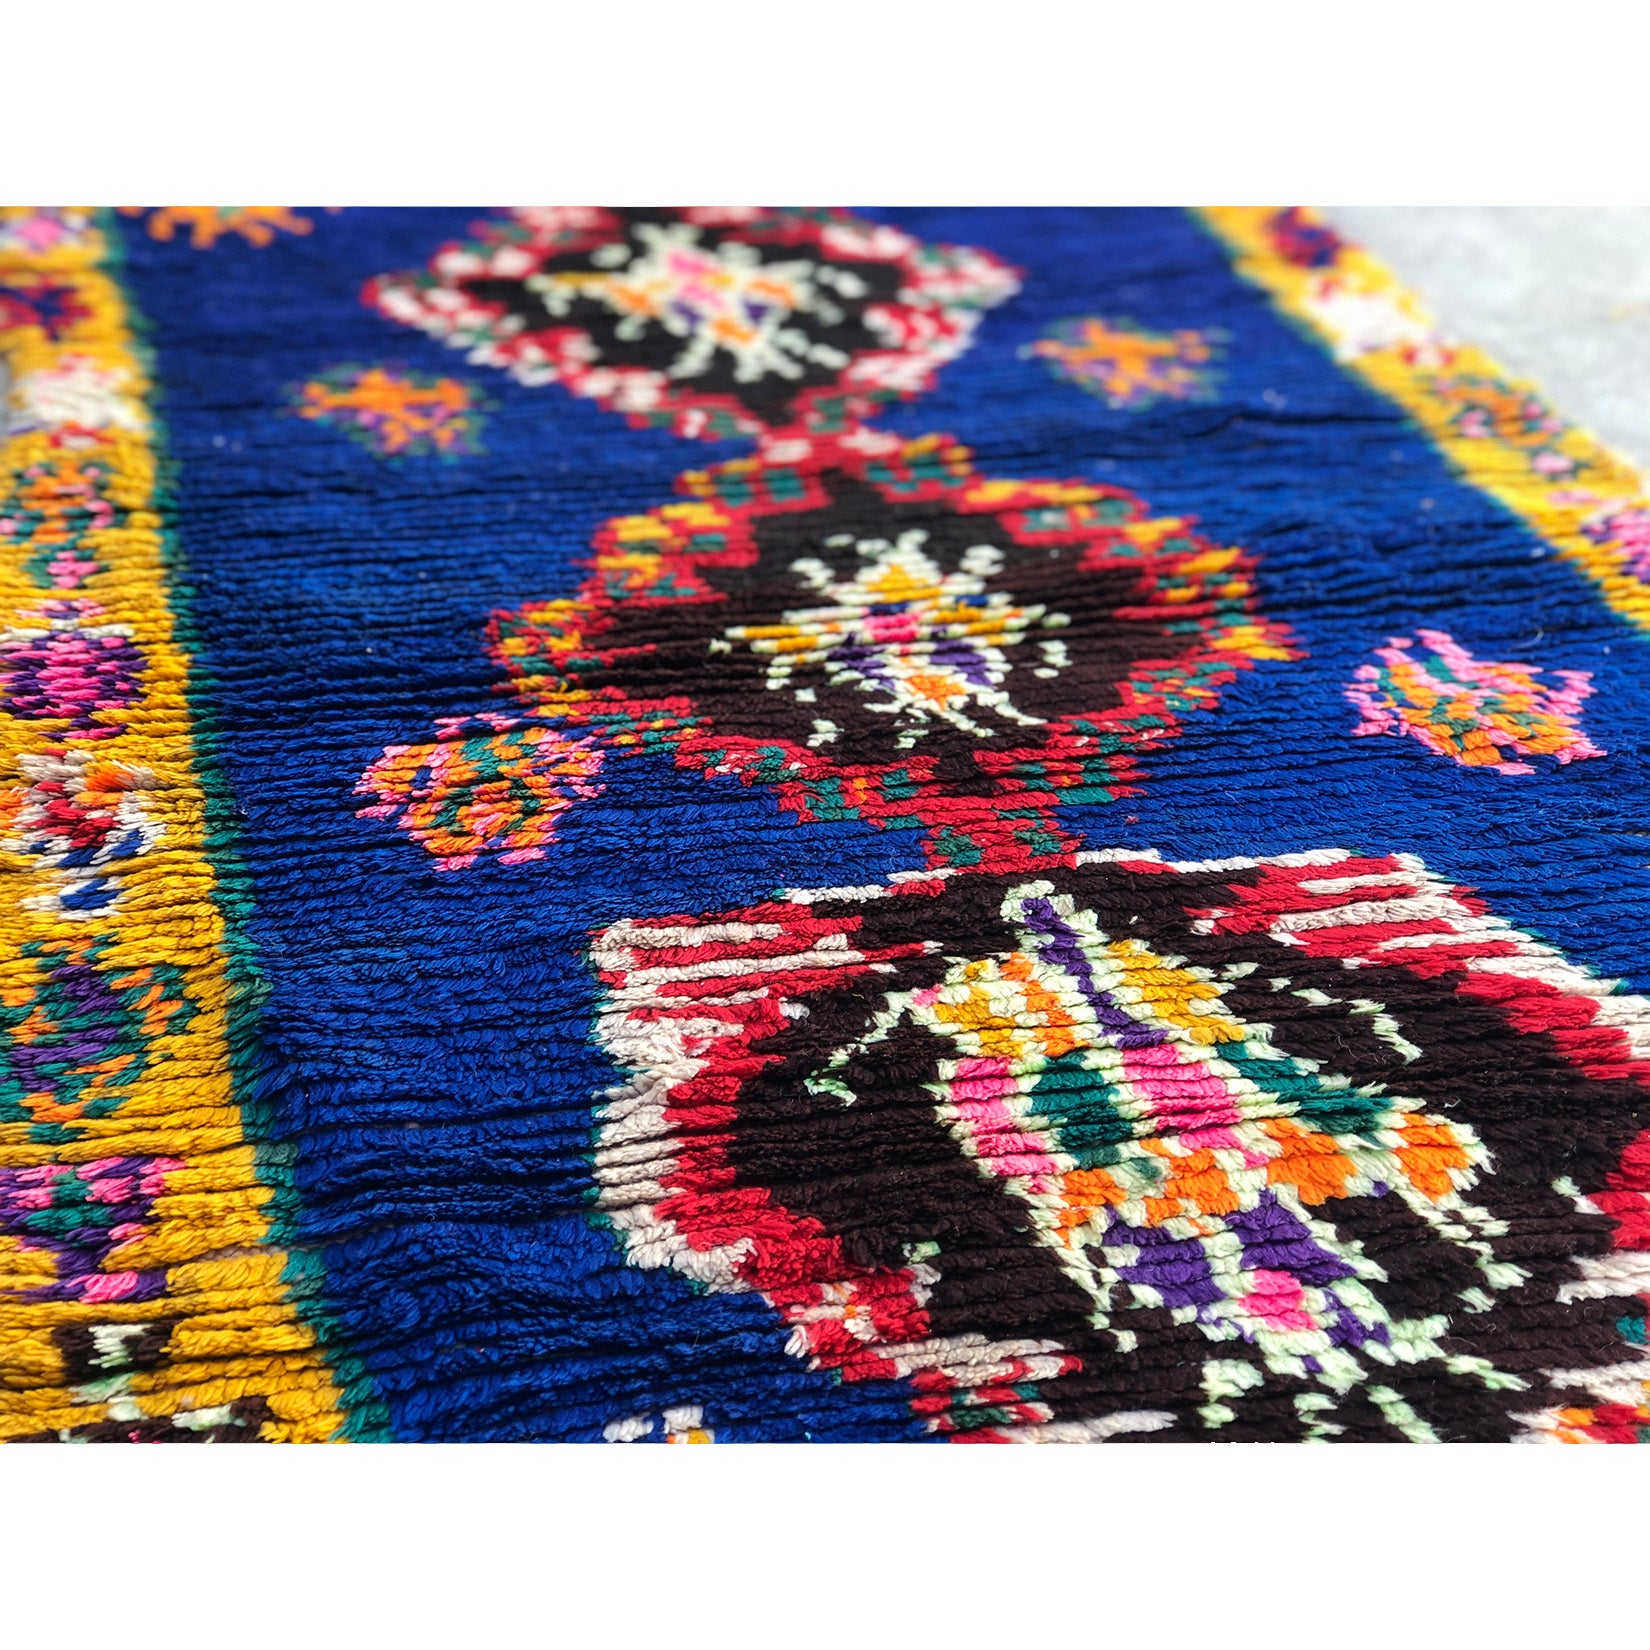 HAJRA - Royal blue boucherouite runner - Kantara | Moroccan Rugs